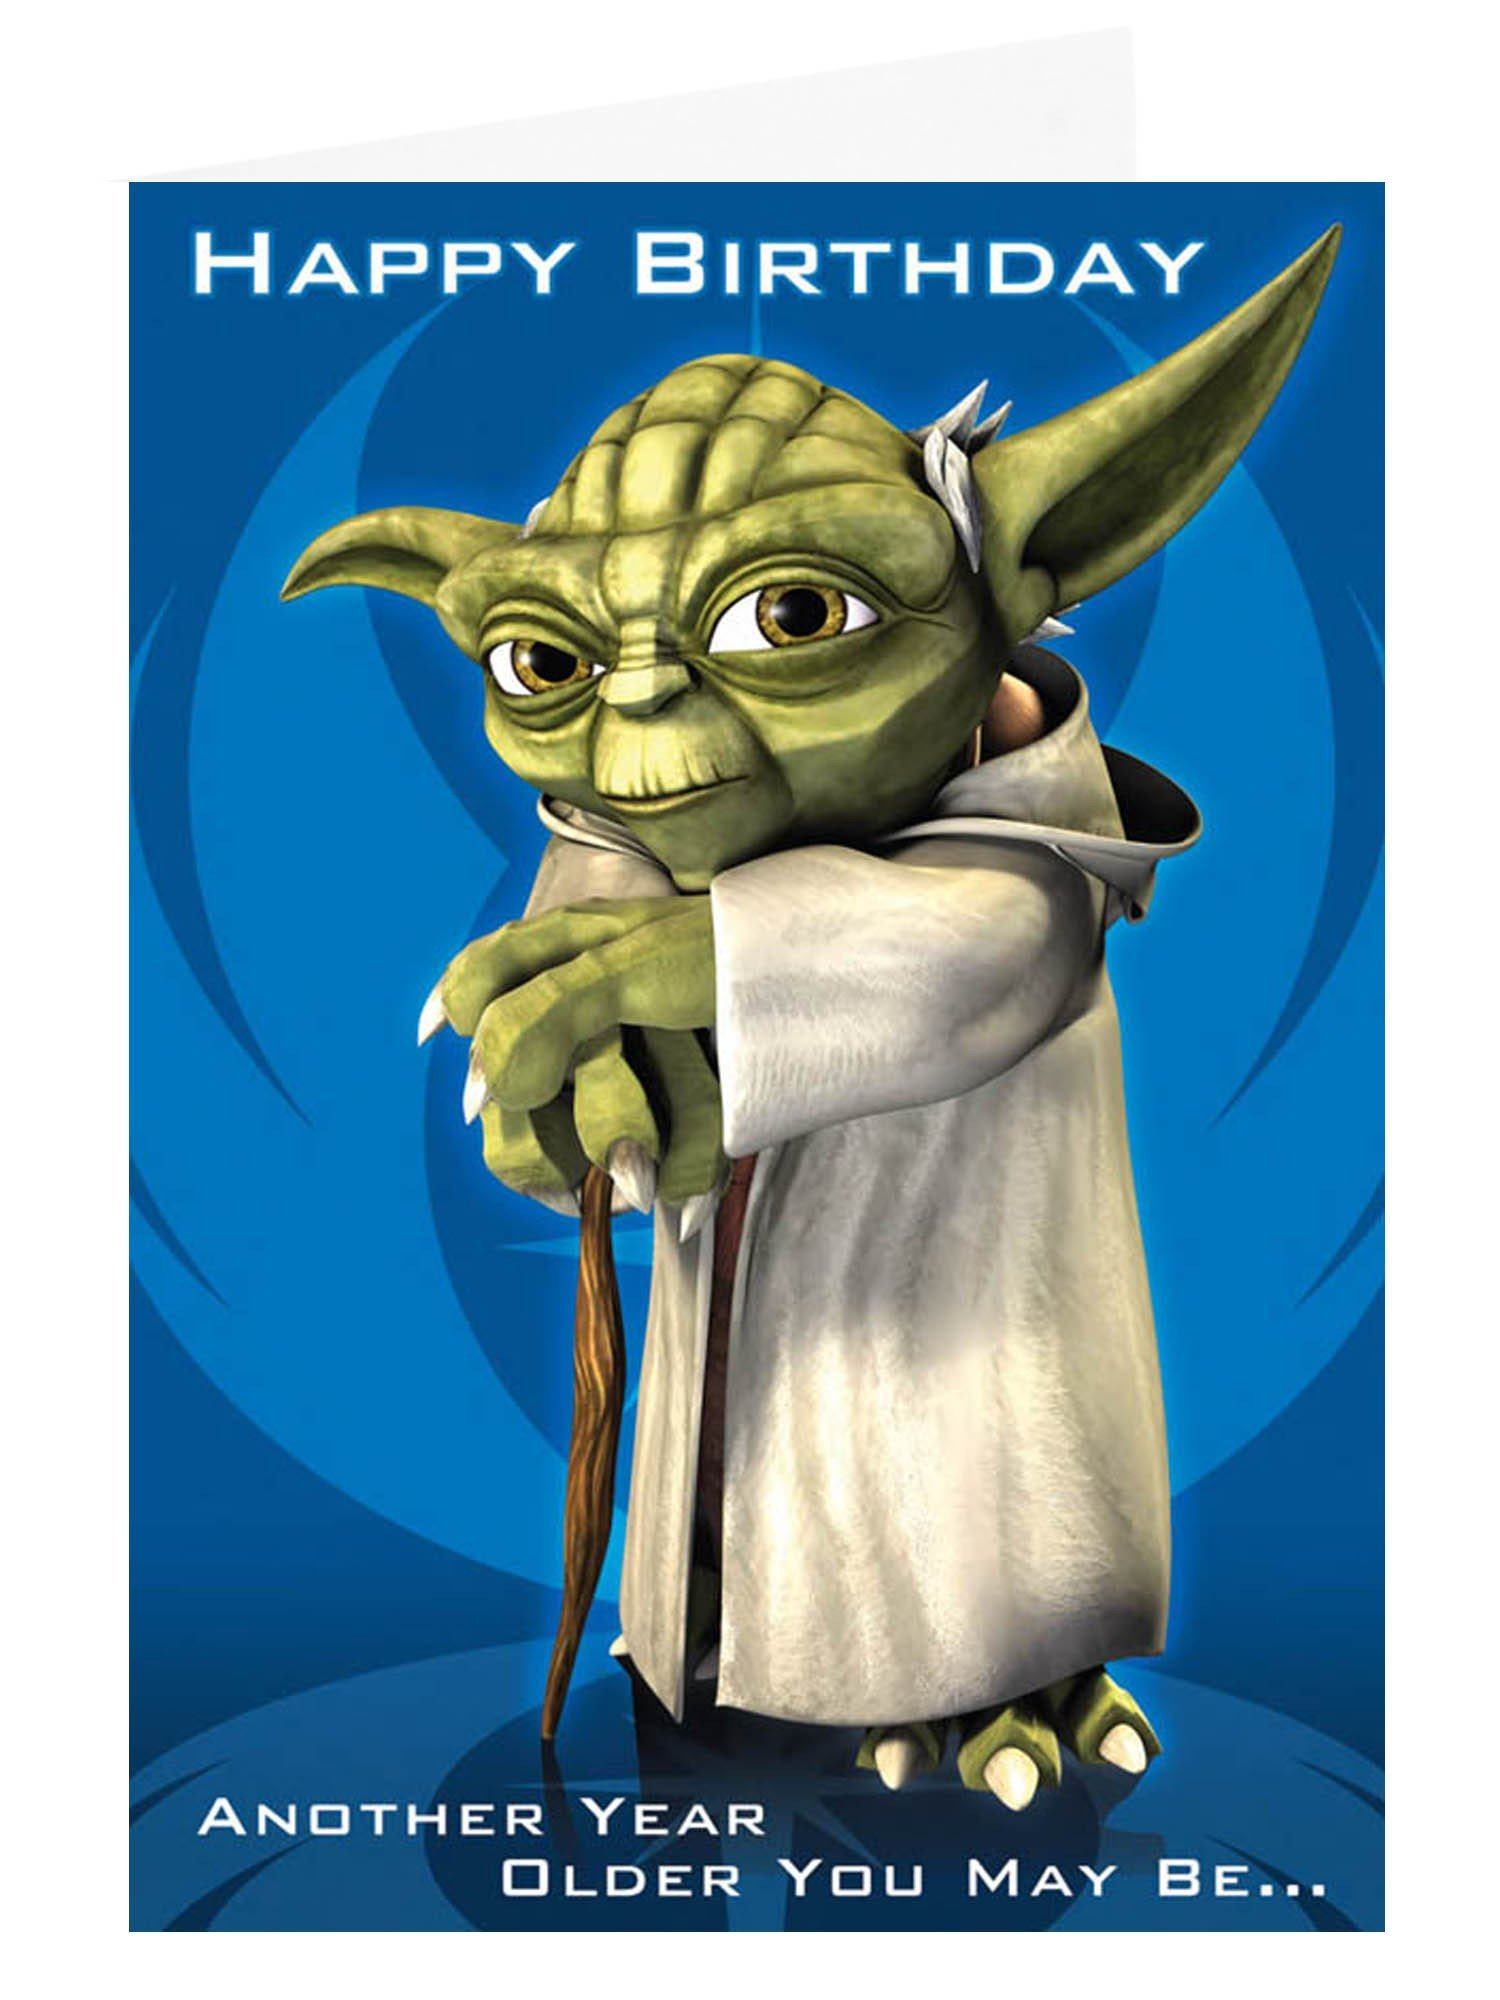 Star Wars Birthday Memes | WishesGreeting |Happy Birthday Star Wars Funny Quote